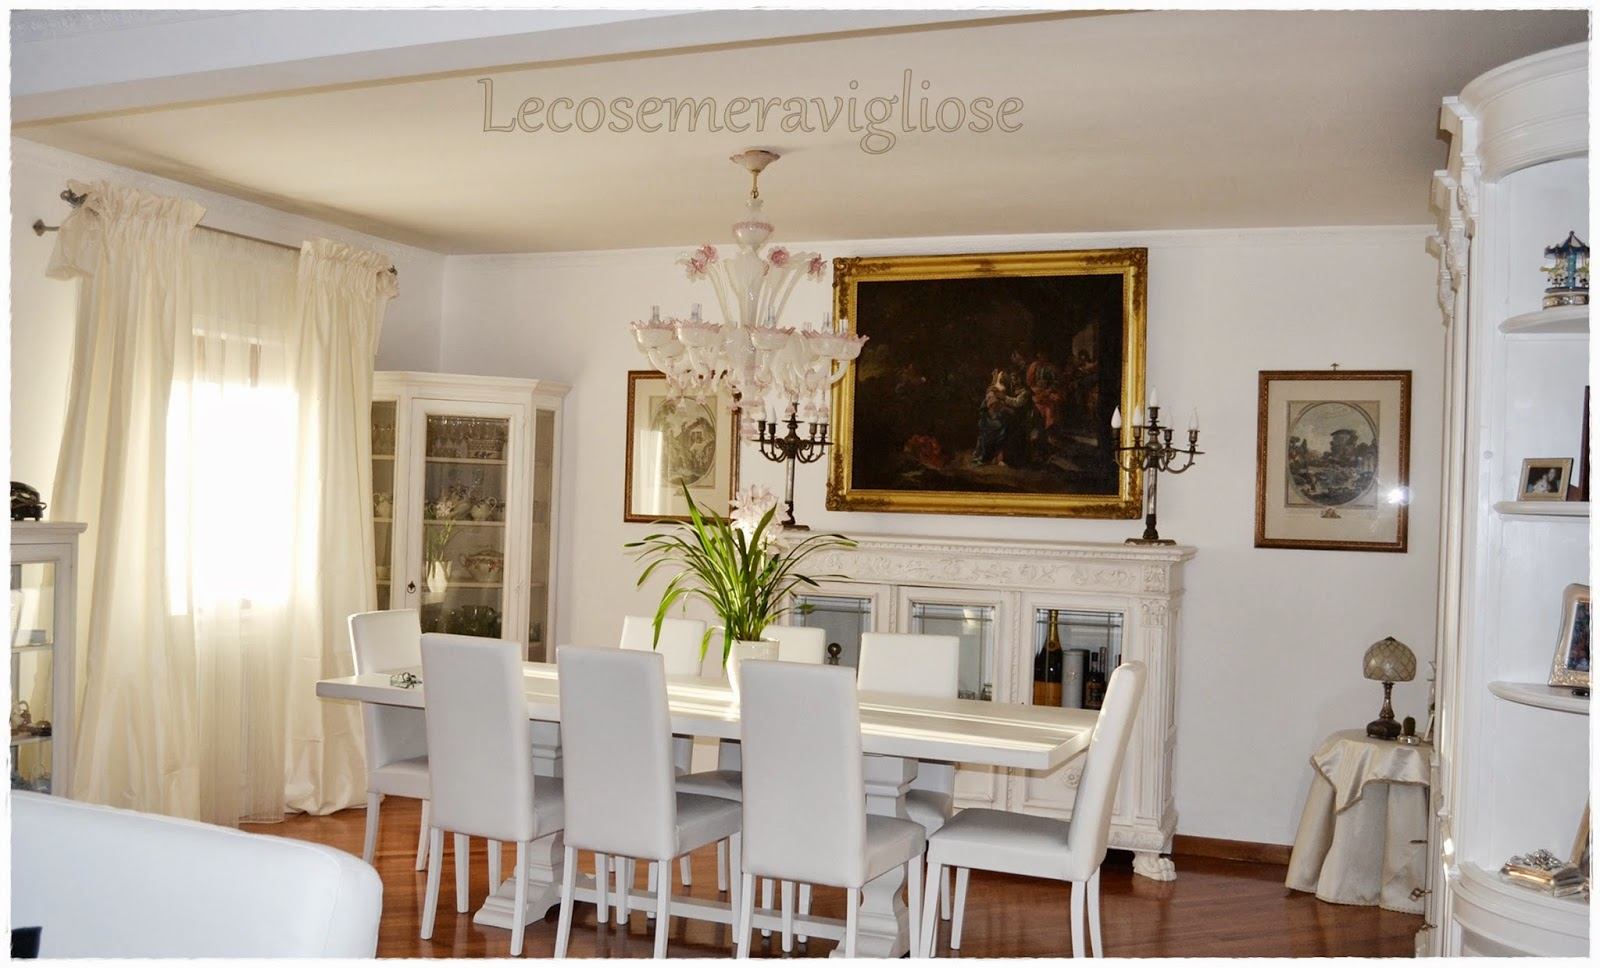 lecosemeravigliose Shabby e country chic passions: Before & After restyling home in Bianco Puro